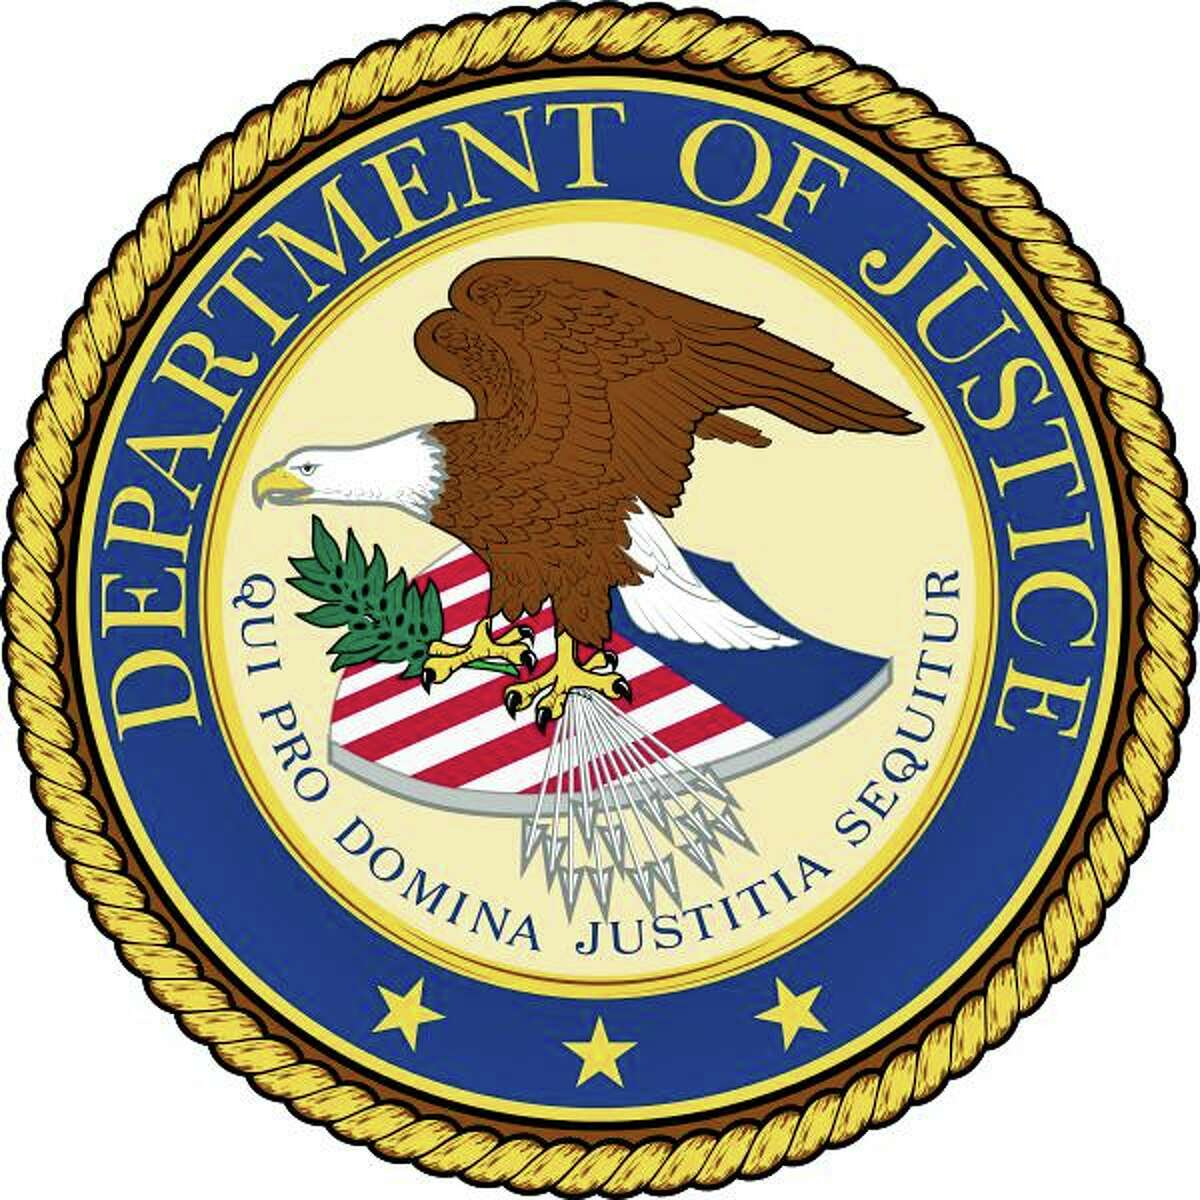 A 24-year-old Bronx, N.Y. man has been indicted for his alleged role in a vehicle-theft ring operating in Connecticut and New York, federal prosecutors announced on Tuesday, Dec. 29, 2020. Josepher Y. Cartagena is accused of being a member of a group, which is believed responsible for the theft of more than 40 vehicles in Connecticut, New York and elsewhere.